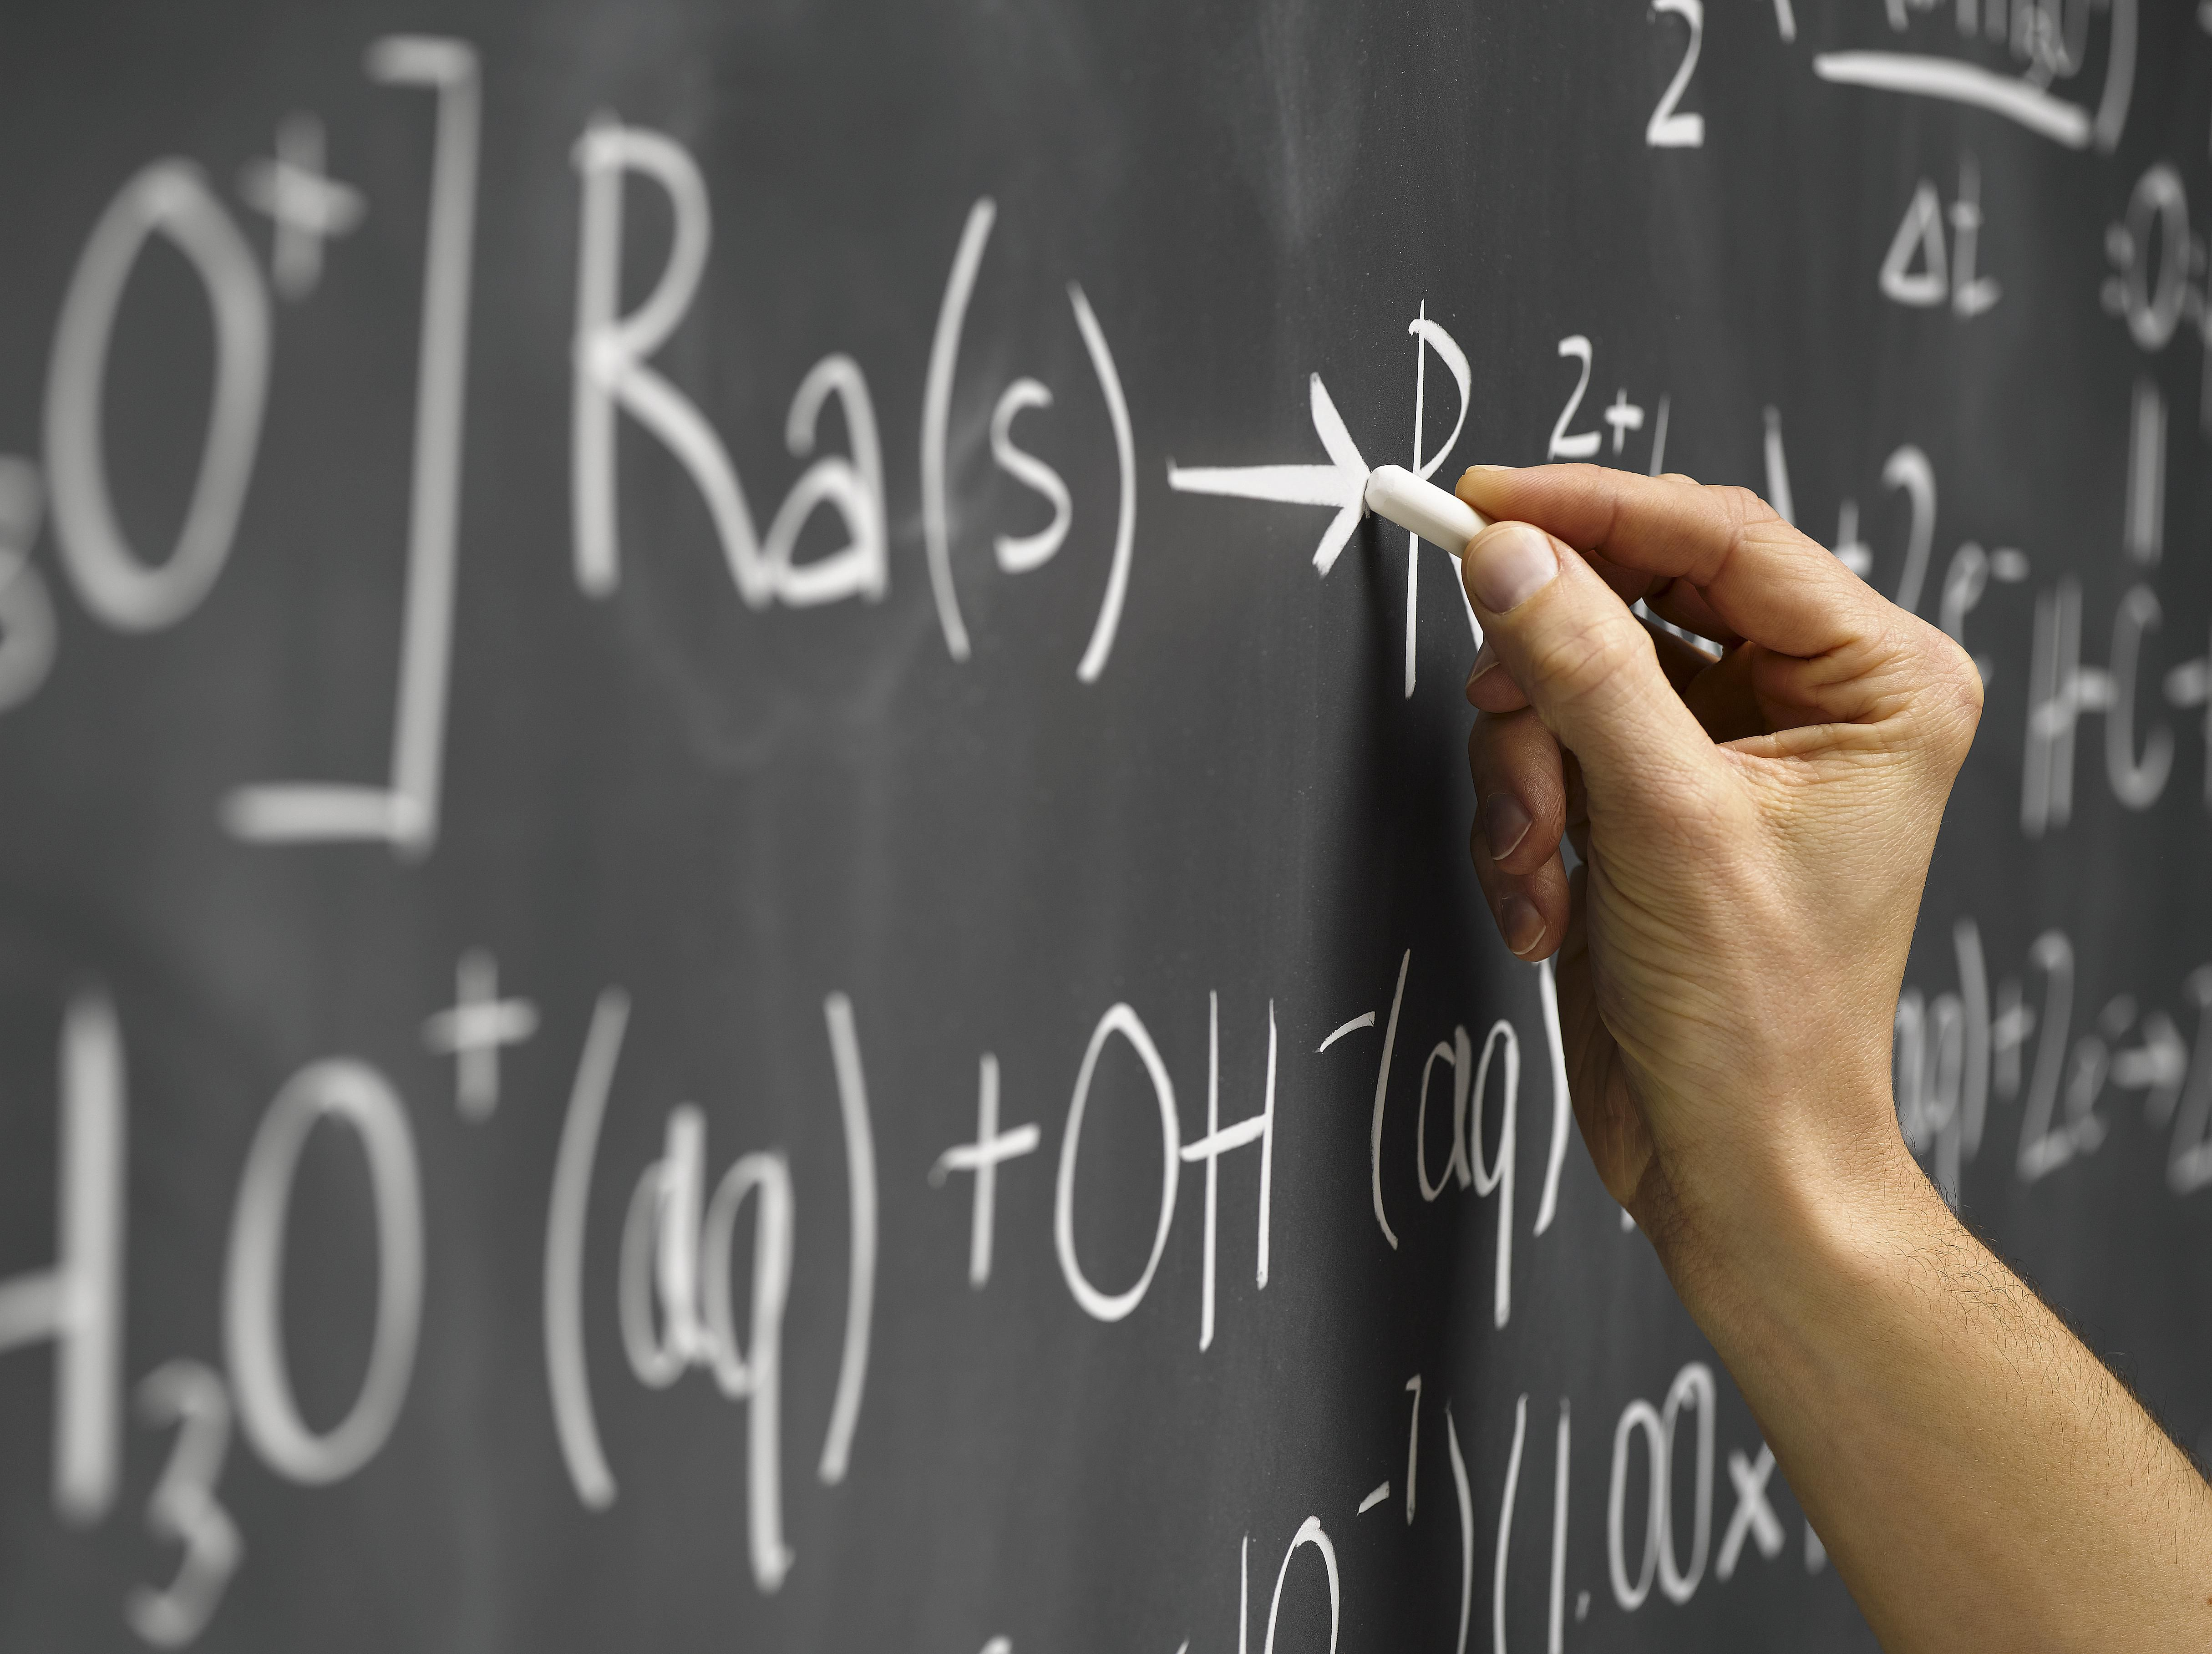 A balanced chemical equation describes the reactants, products, and  quantities of chemicals in a